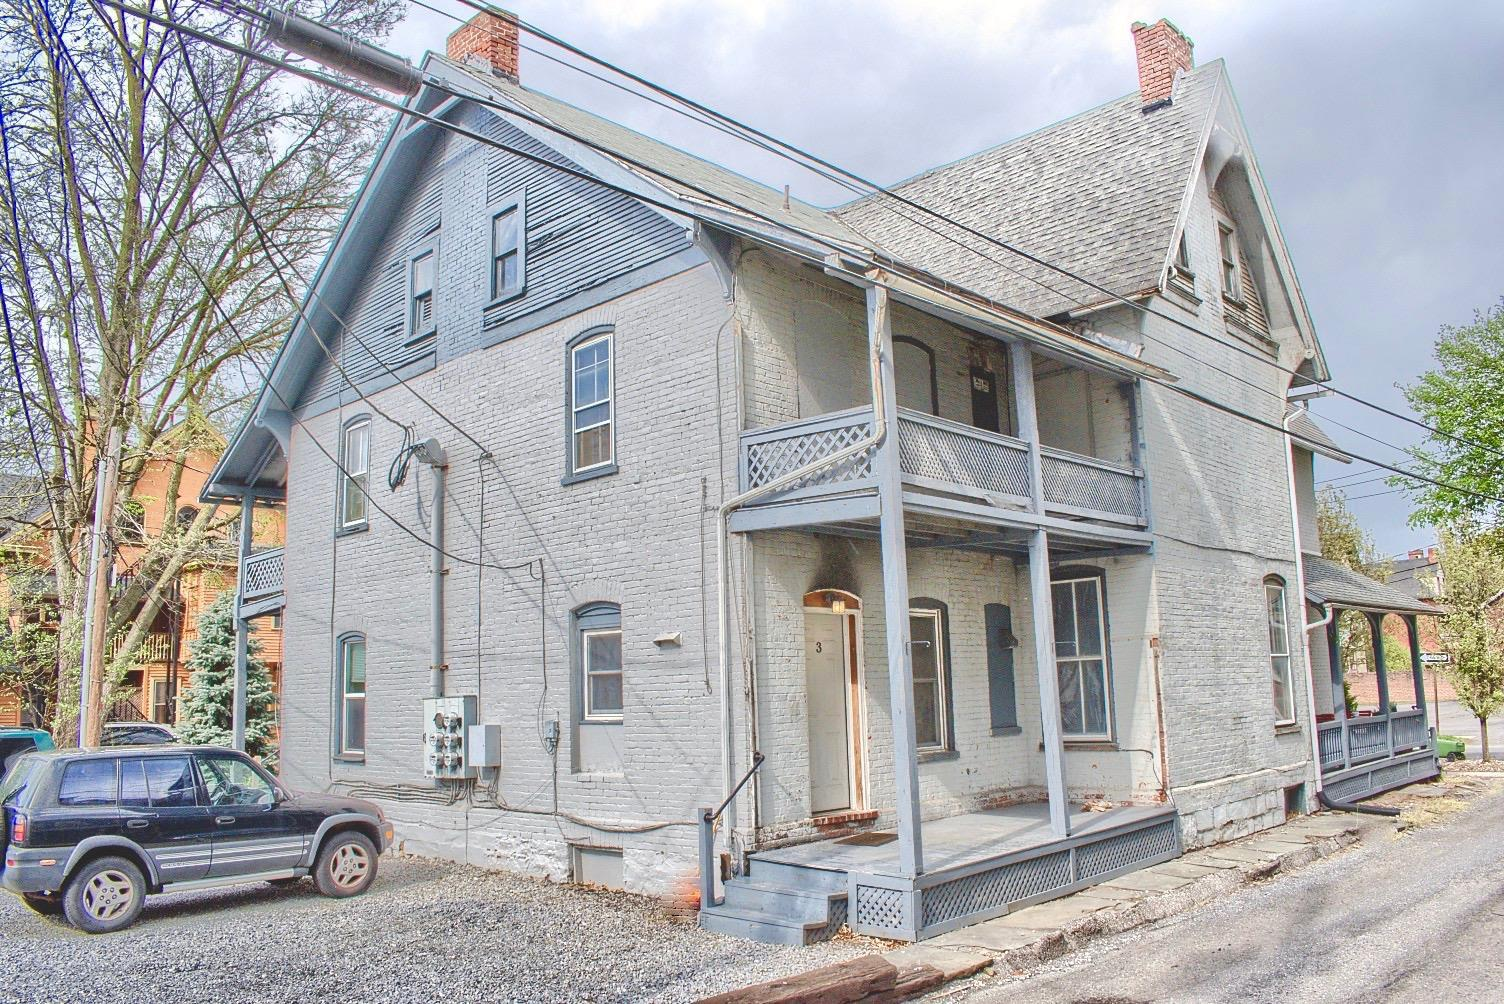 337 CENTER STREET, Williamsport, PA 17701, ,Multi-units,For sale,CENTER,WB-92441